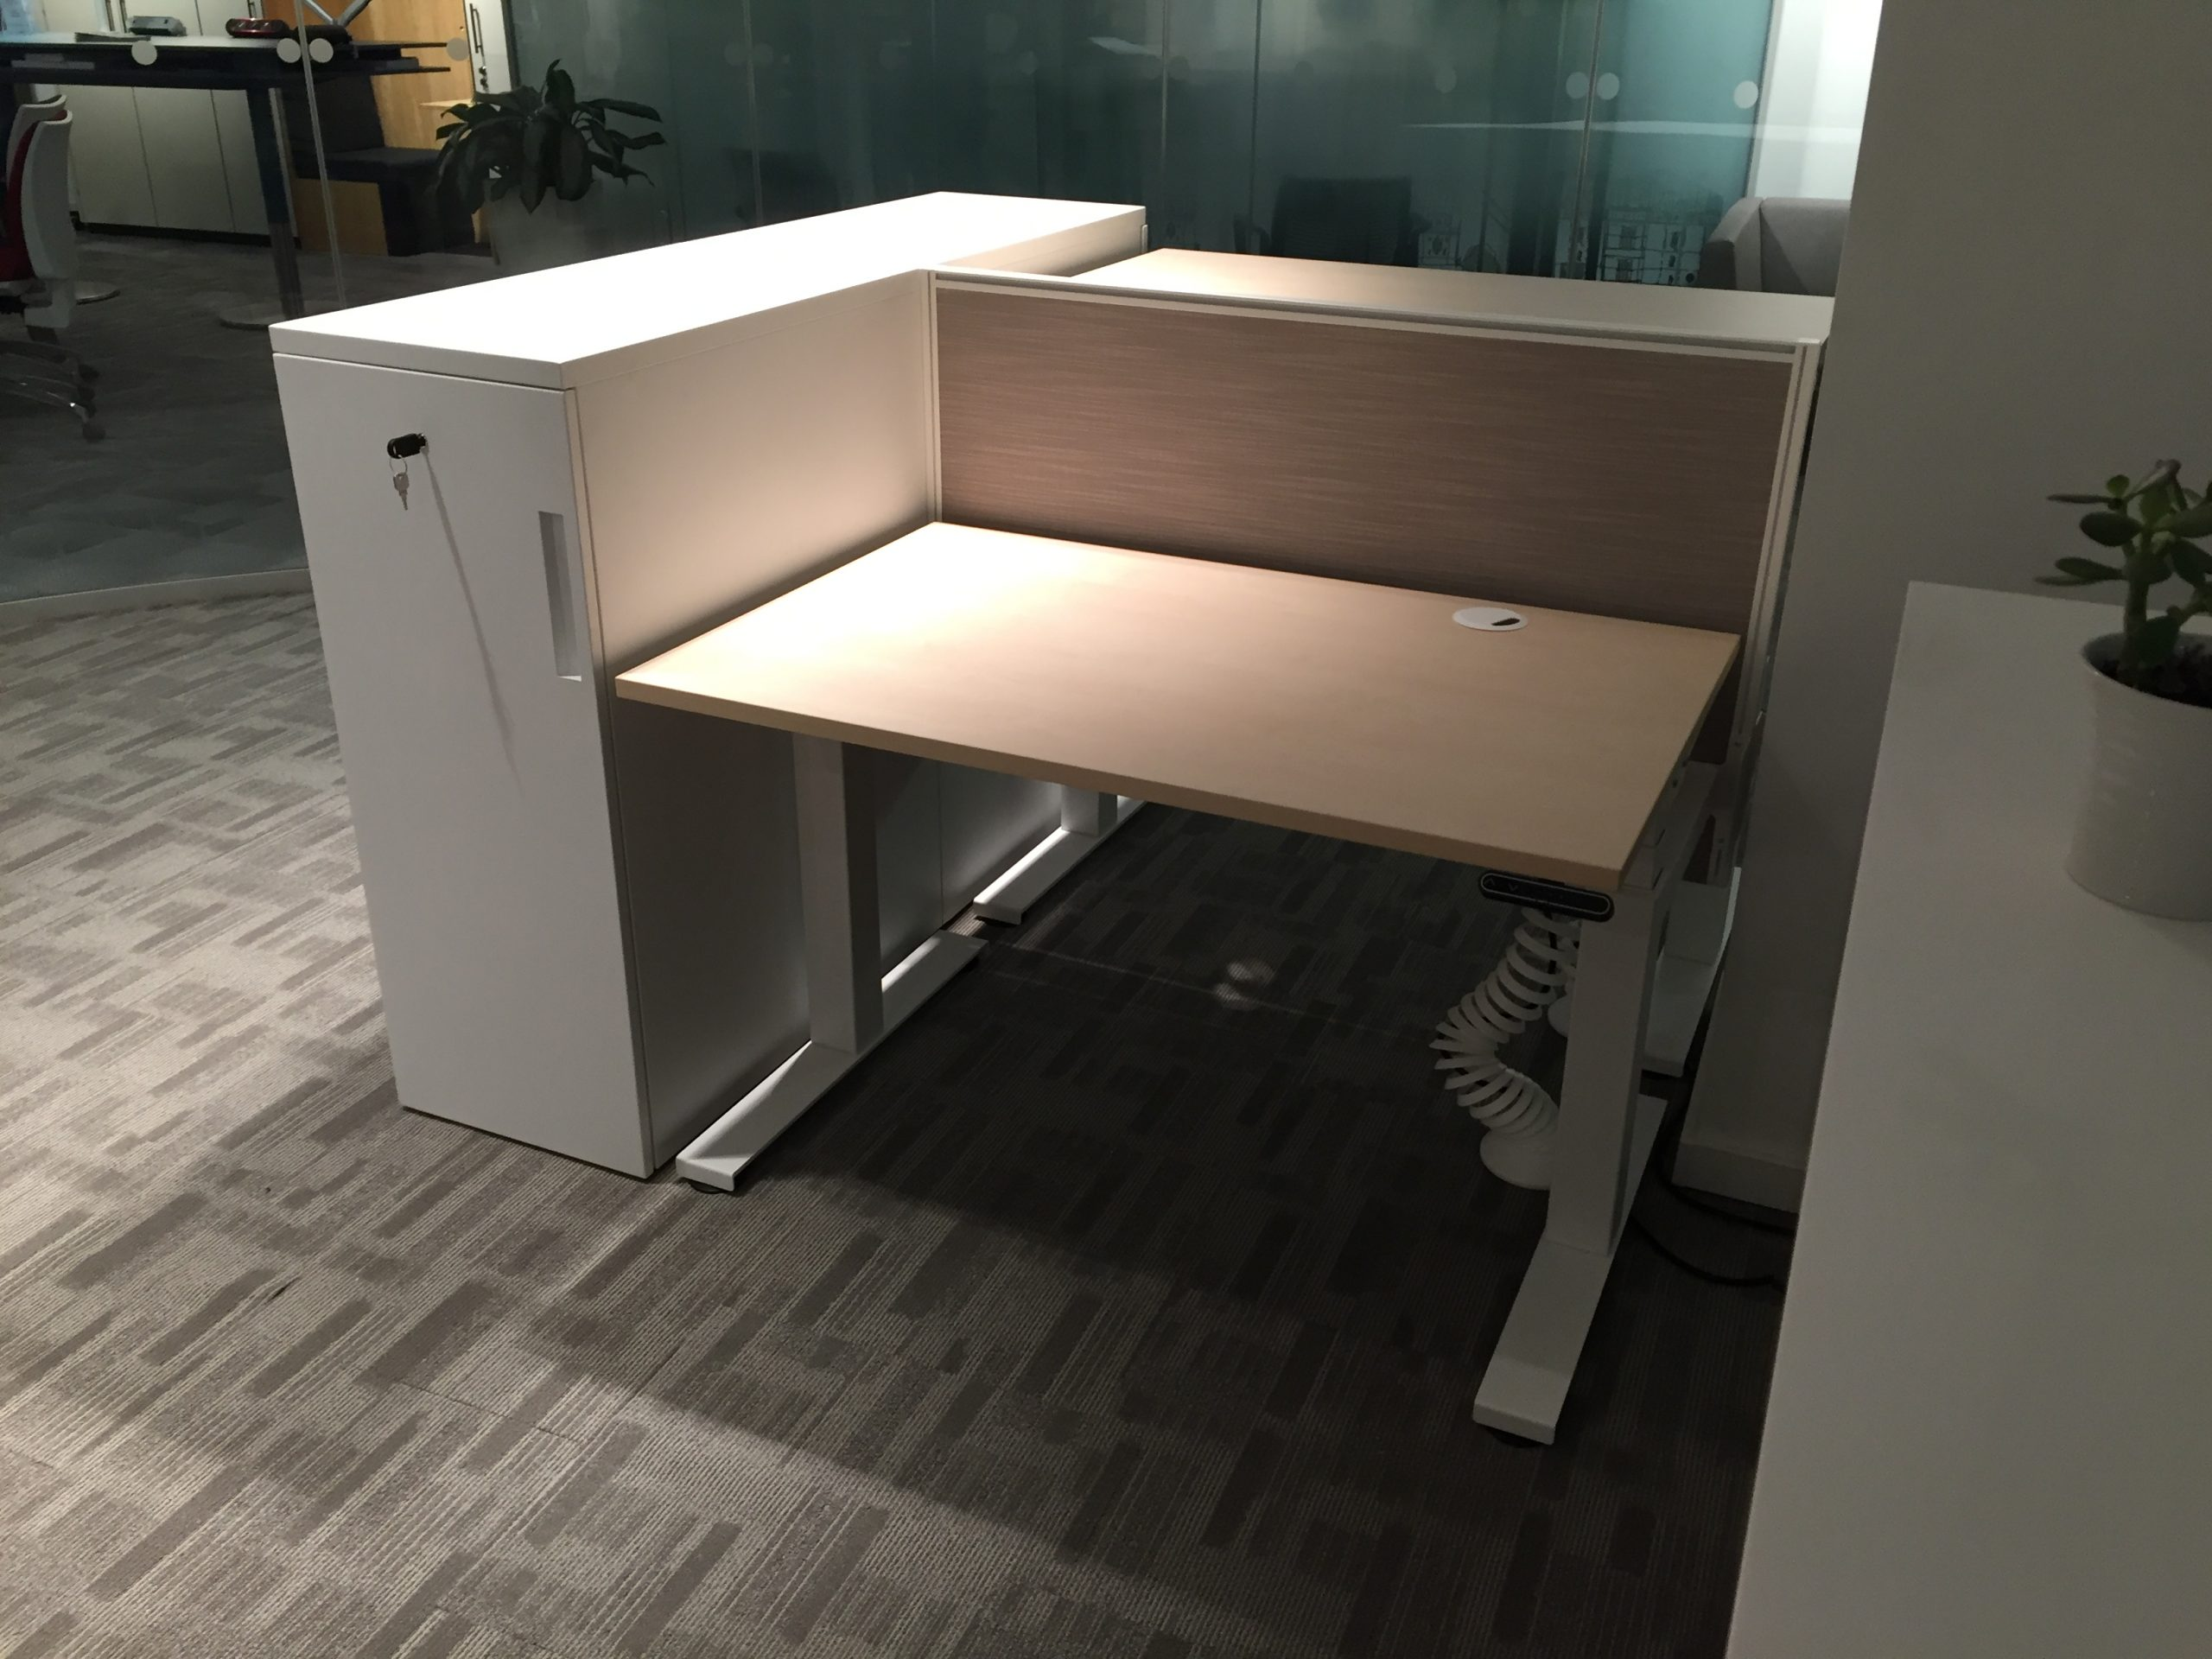 Operation Sit Stand Desk Tower Closed scaled